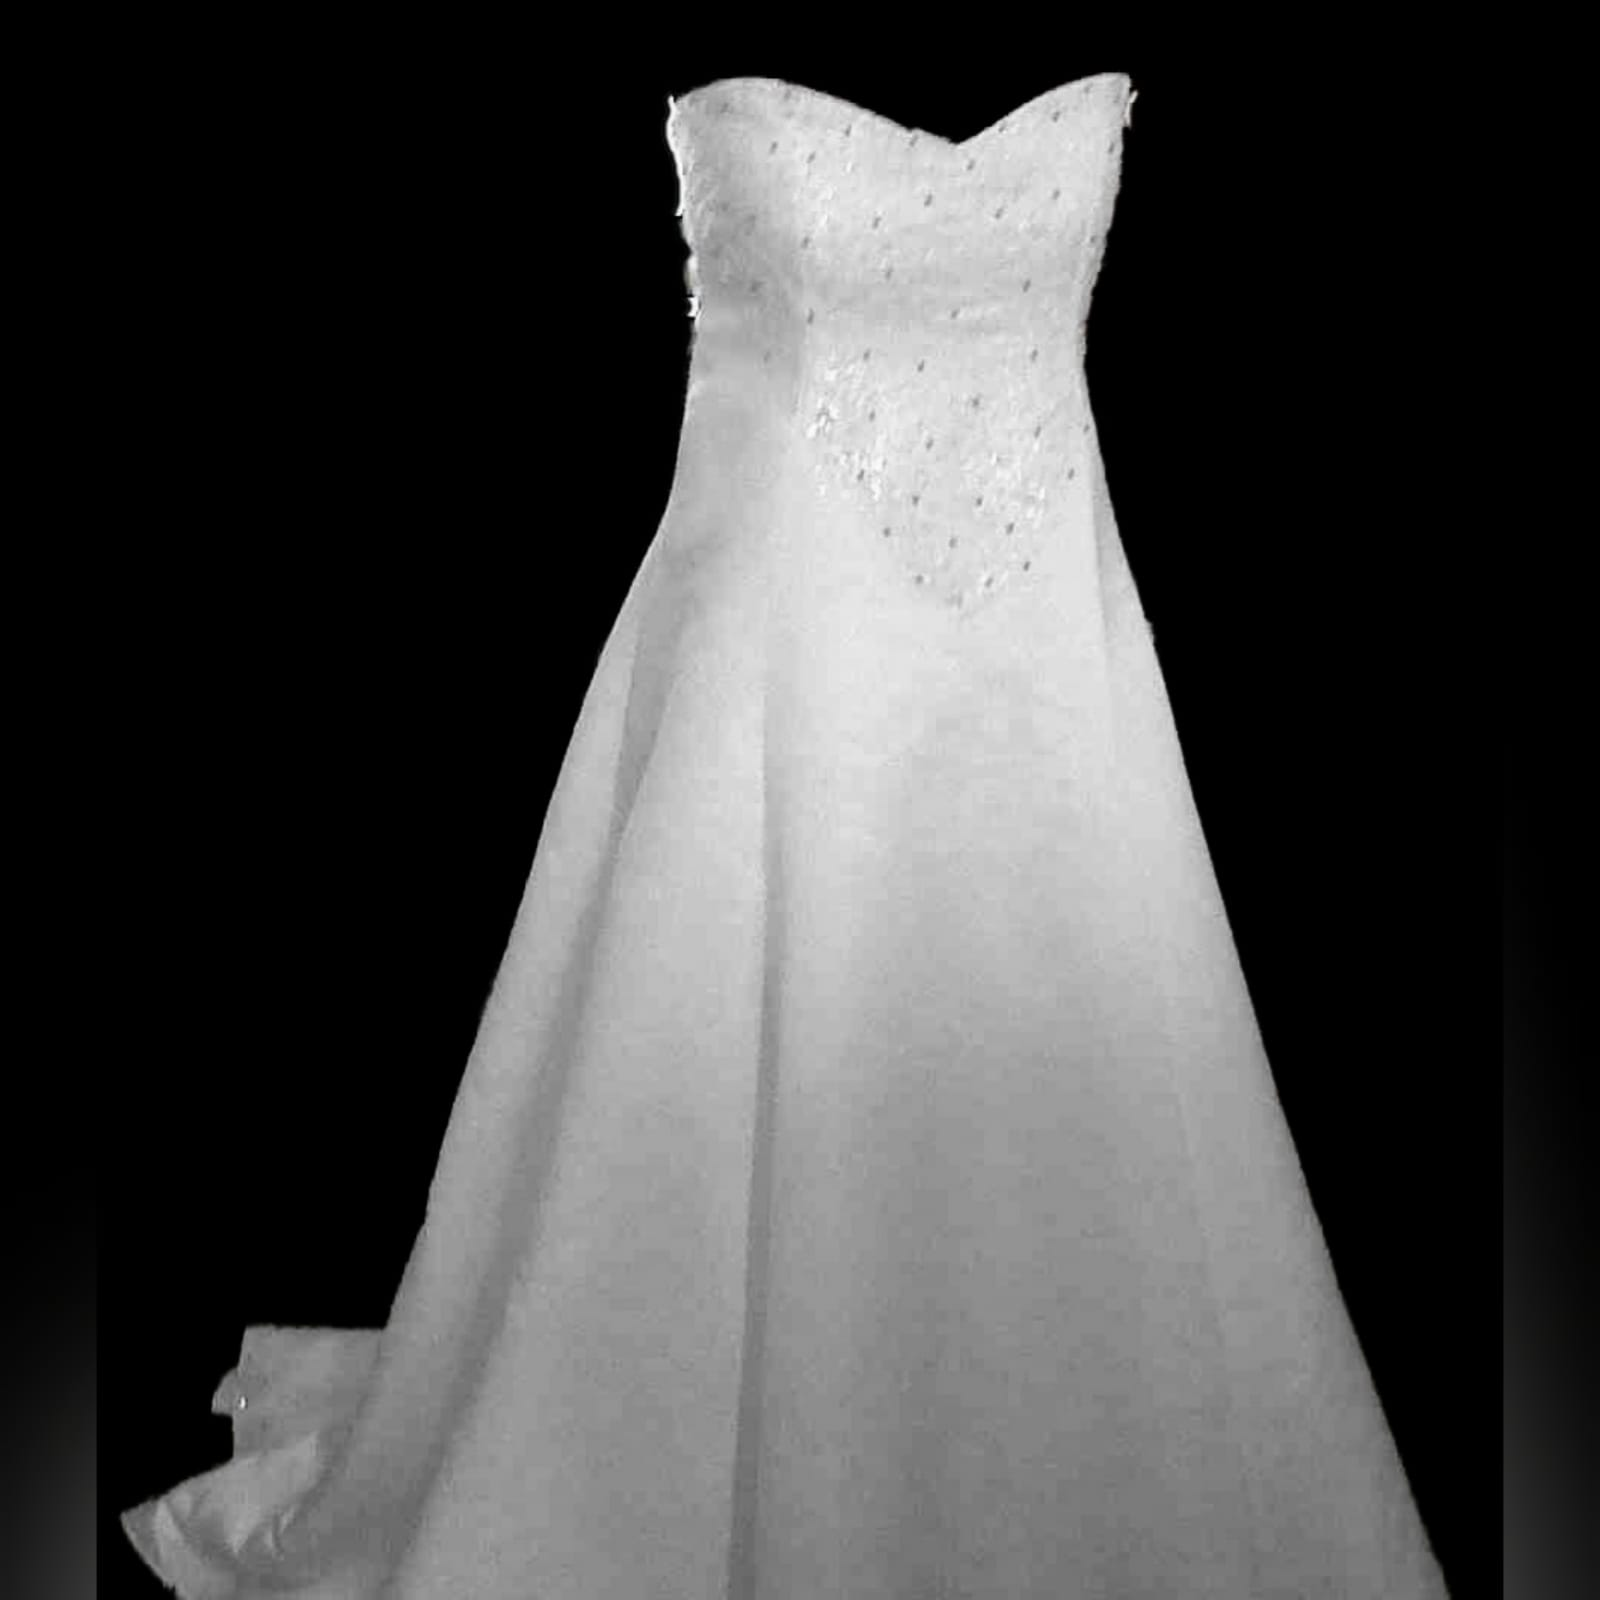 White & glitter ball gown wedding dress 4 white & glitter ball gown wedding dress. Bodice detailed with silver detail and beads. Falling to the ballgown. Back detailed with silver covered buttons.